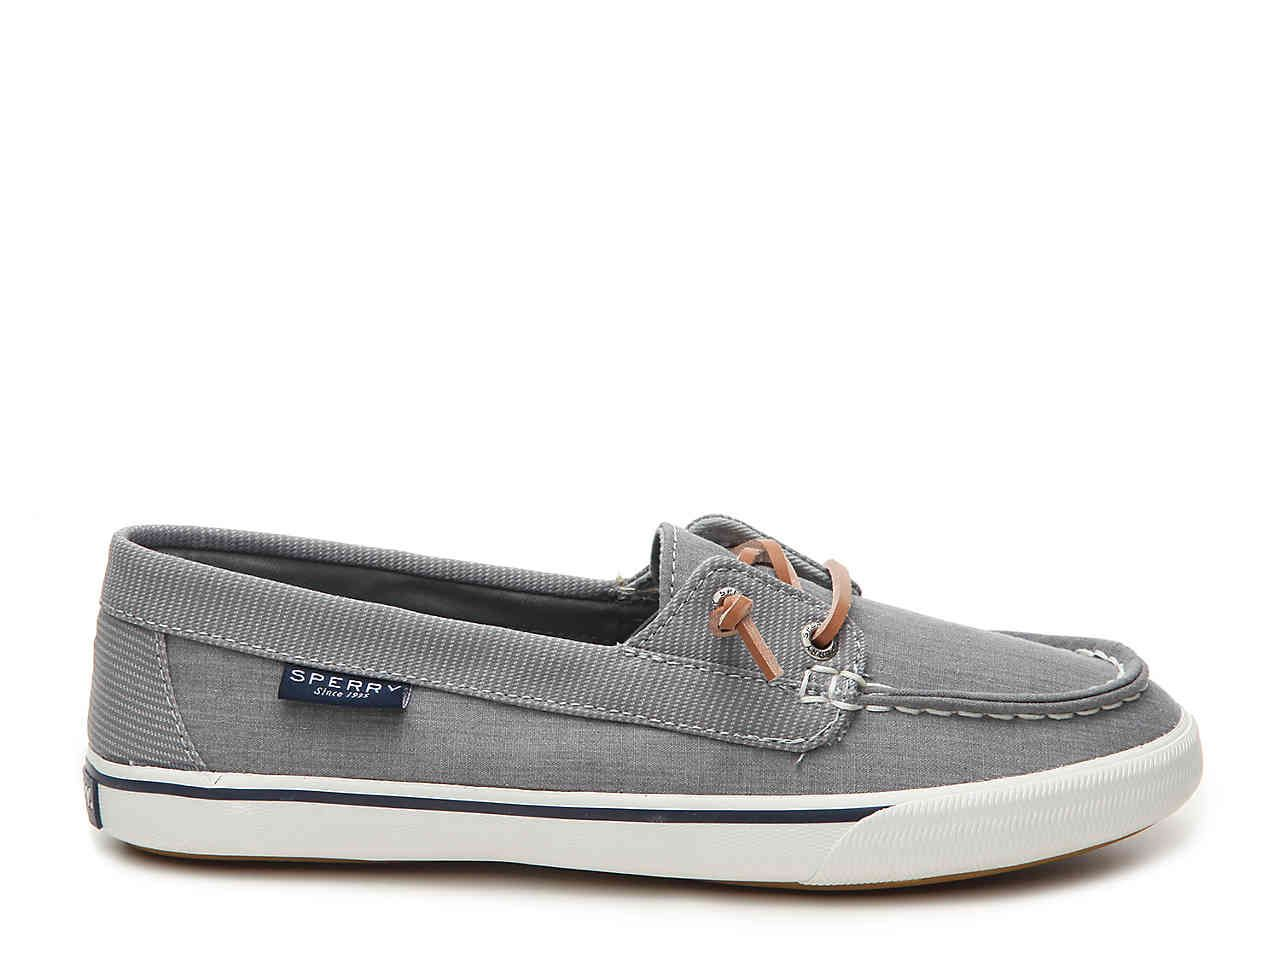 a968eb05678 Sperry Top-Sider Lounge Away Boat Shoe Women s Shoes